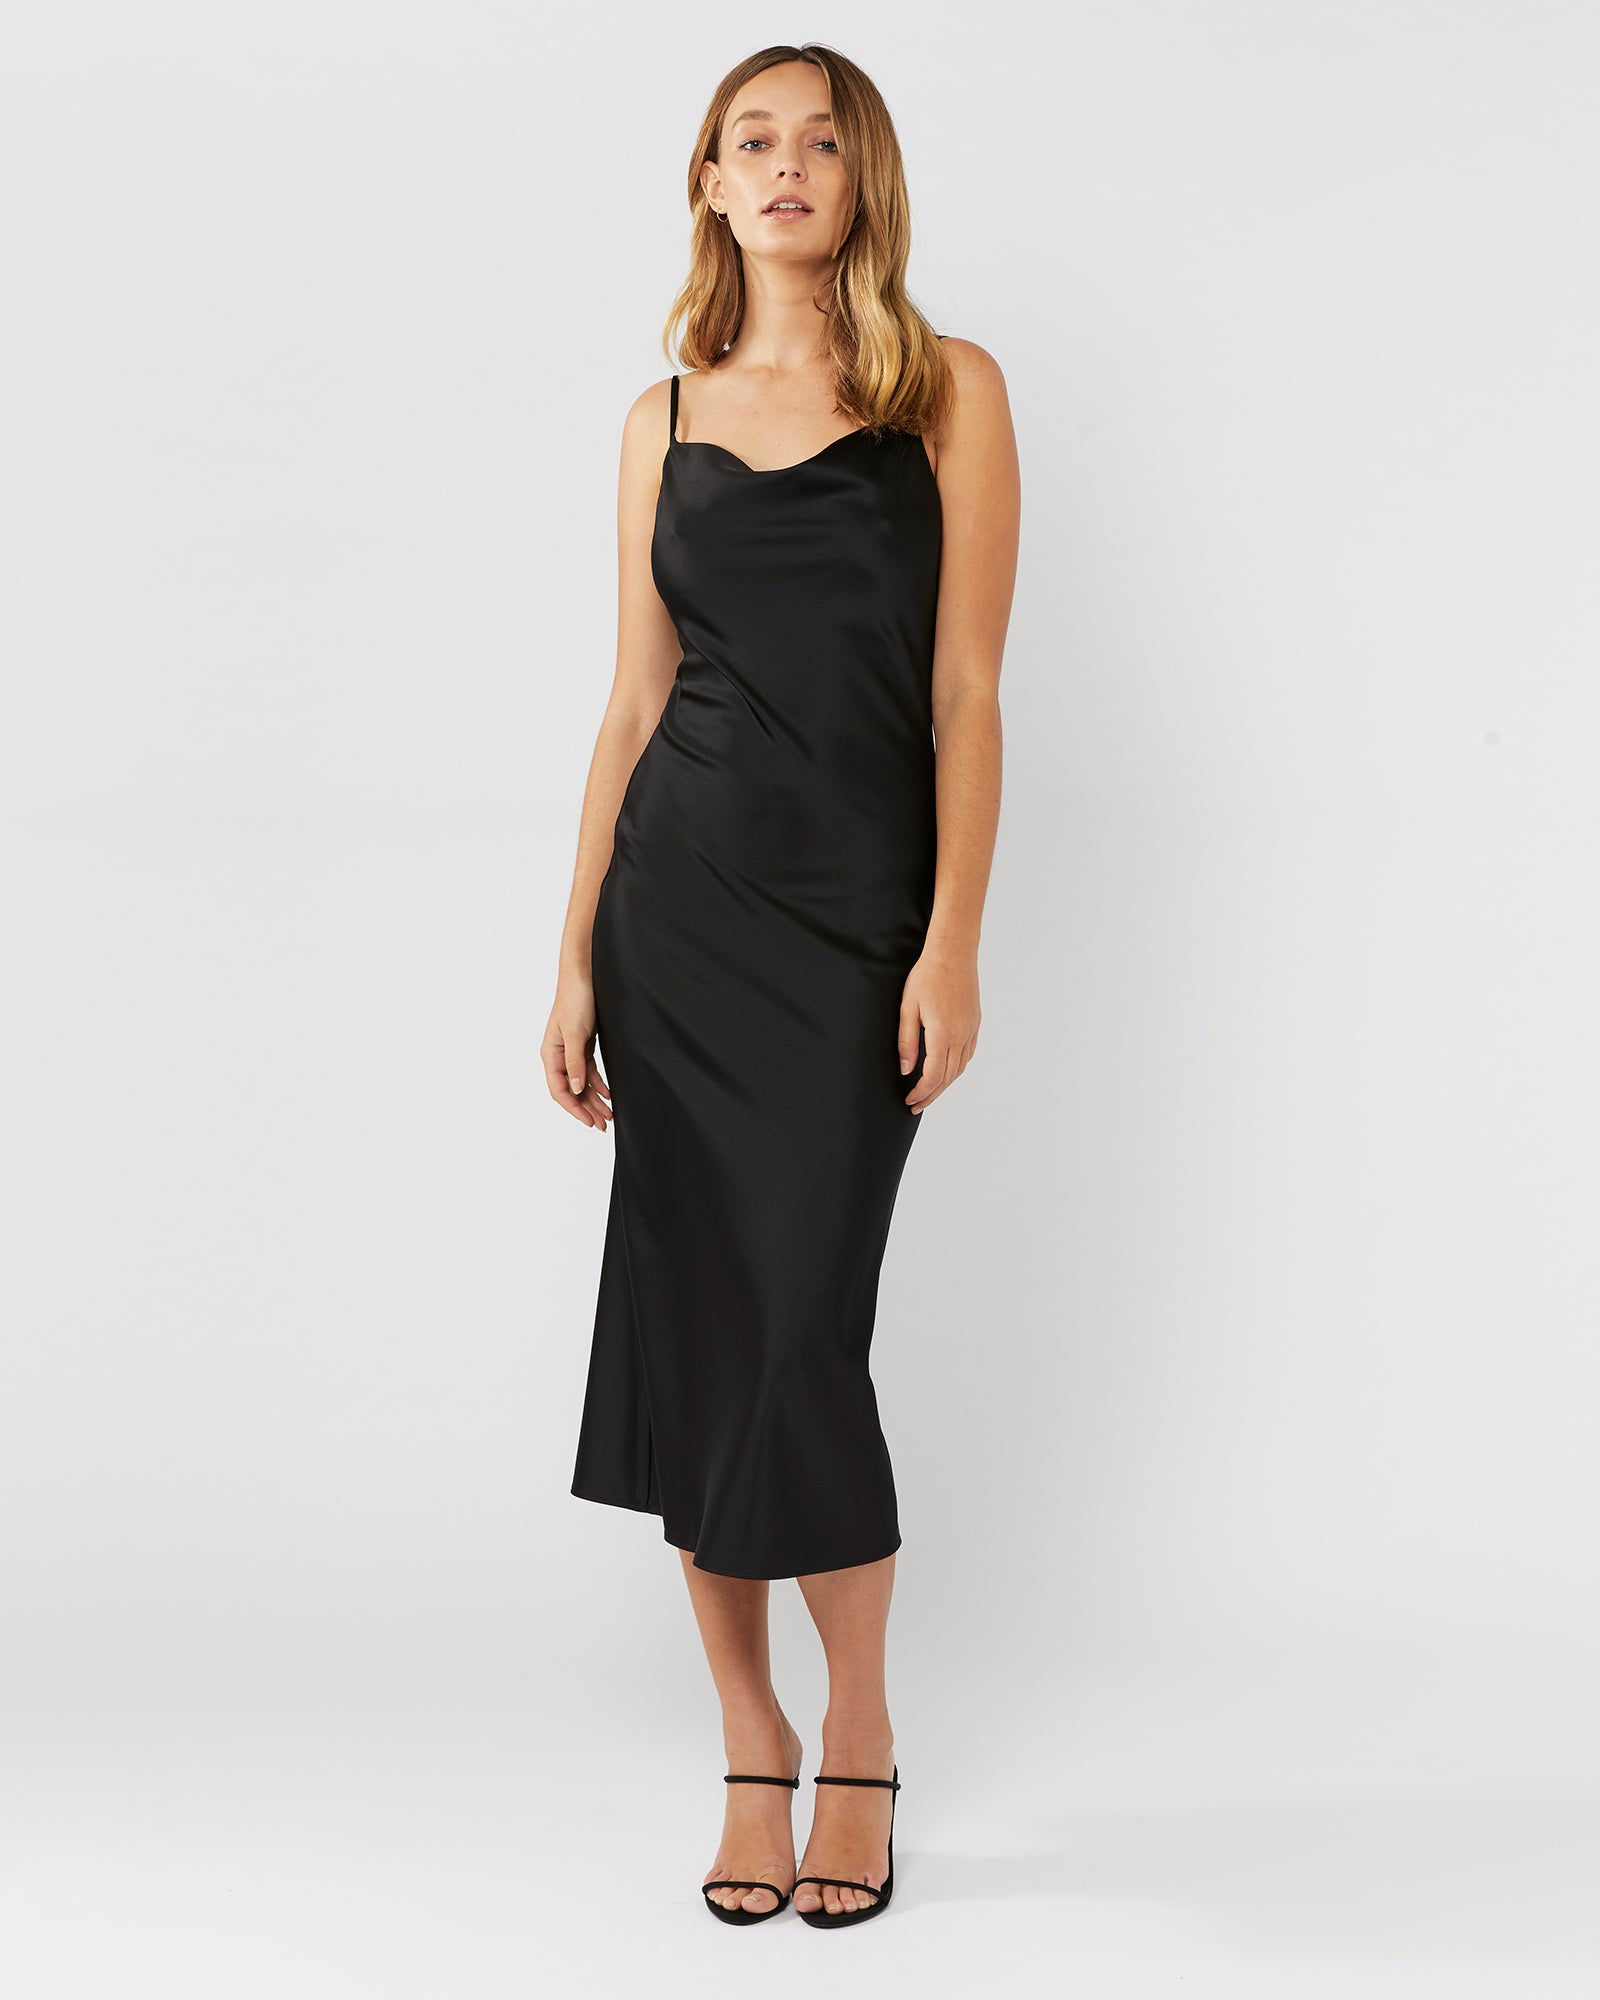 SMALL TALK SLIP DRESS - BLACK